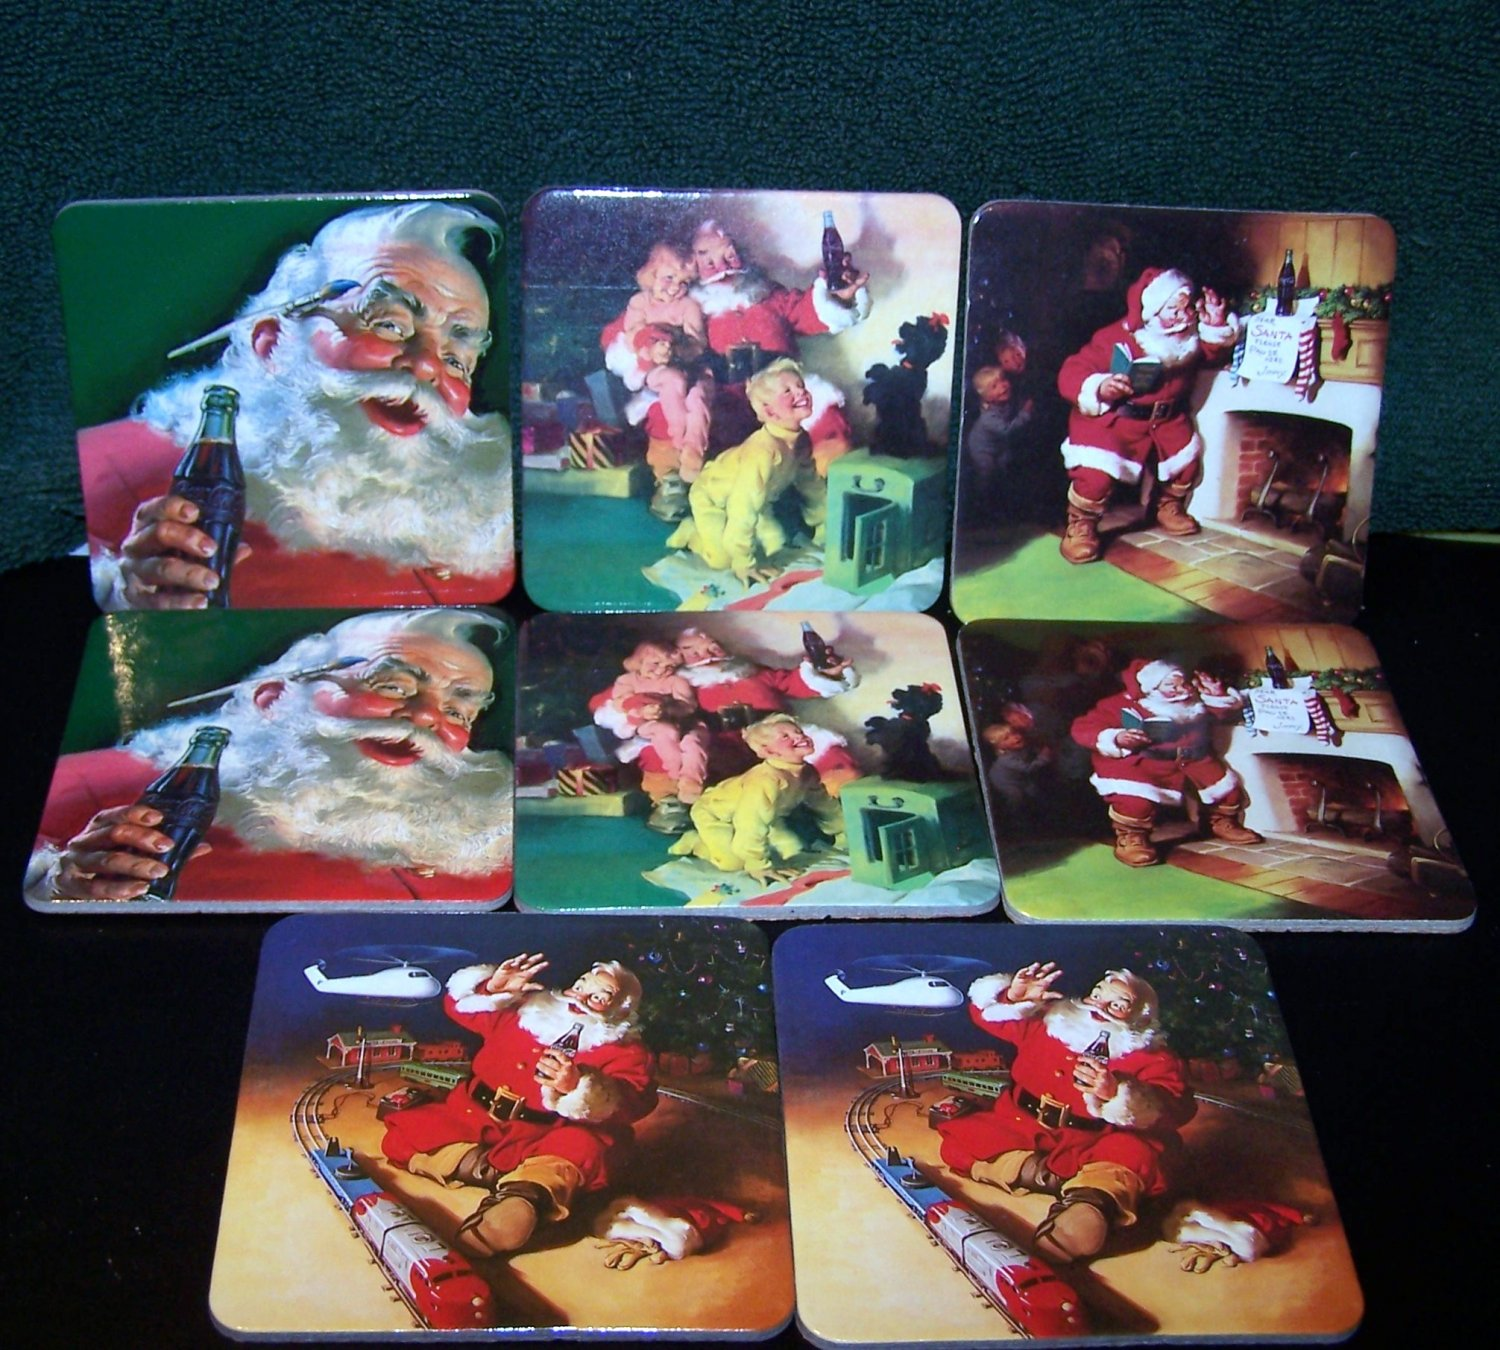 Vintage Coca Cola Santa Claus Coasters set of 8 � 2 each of 4 Different Santa Scenes Coke